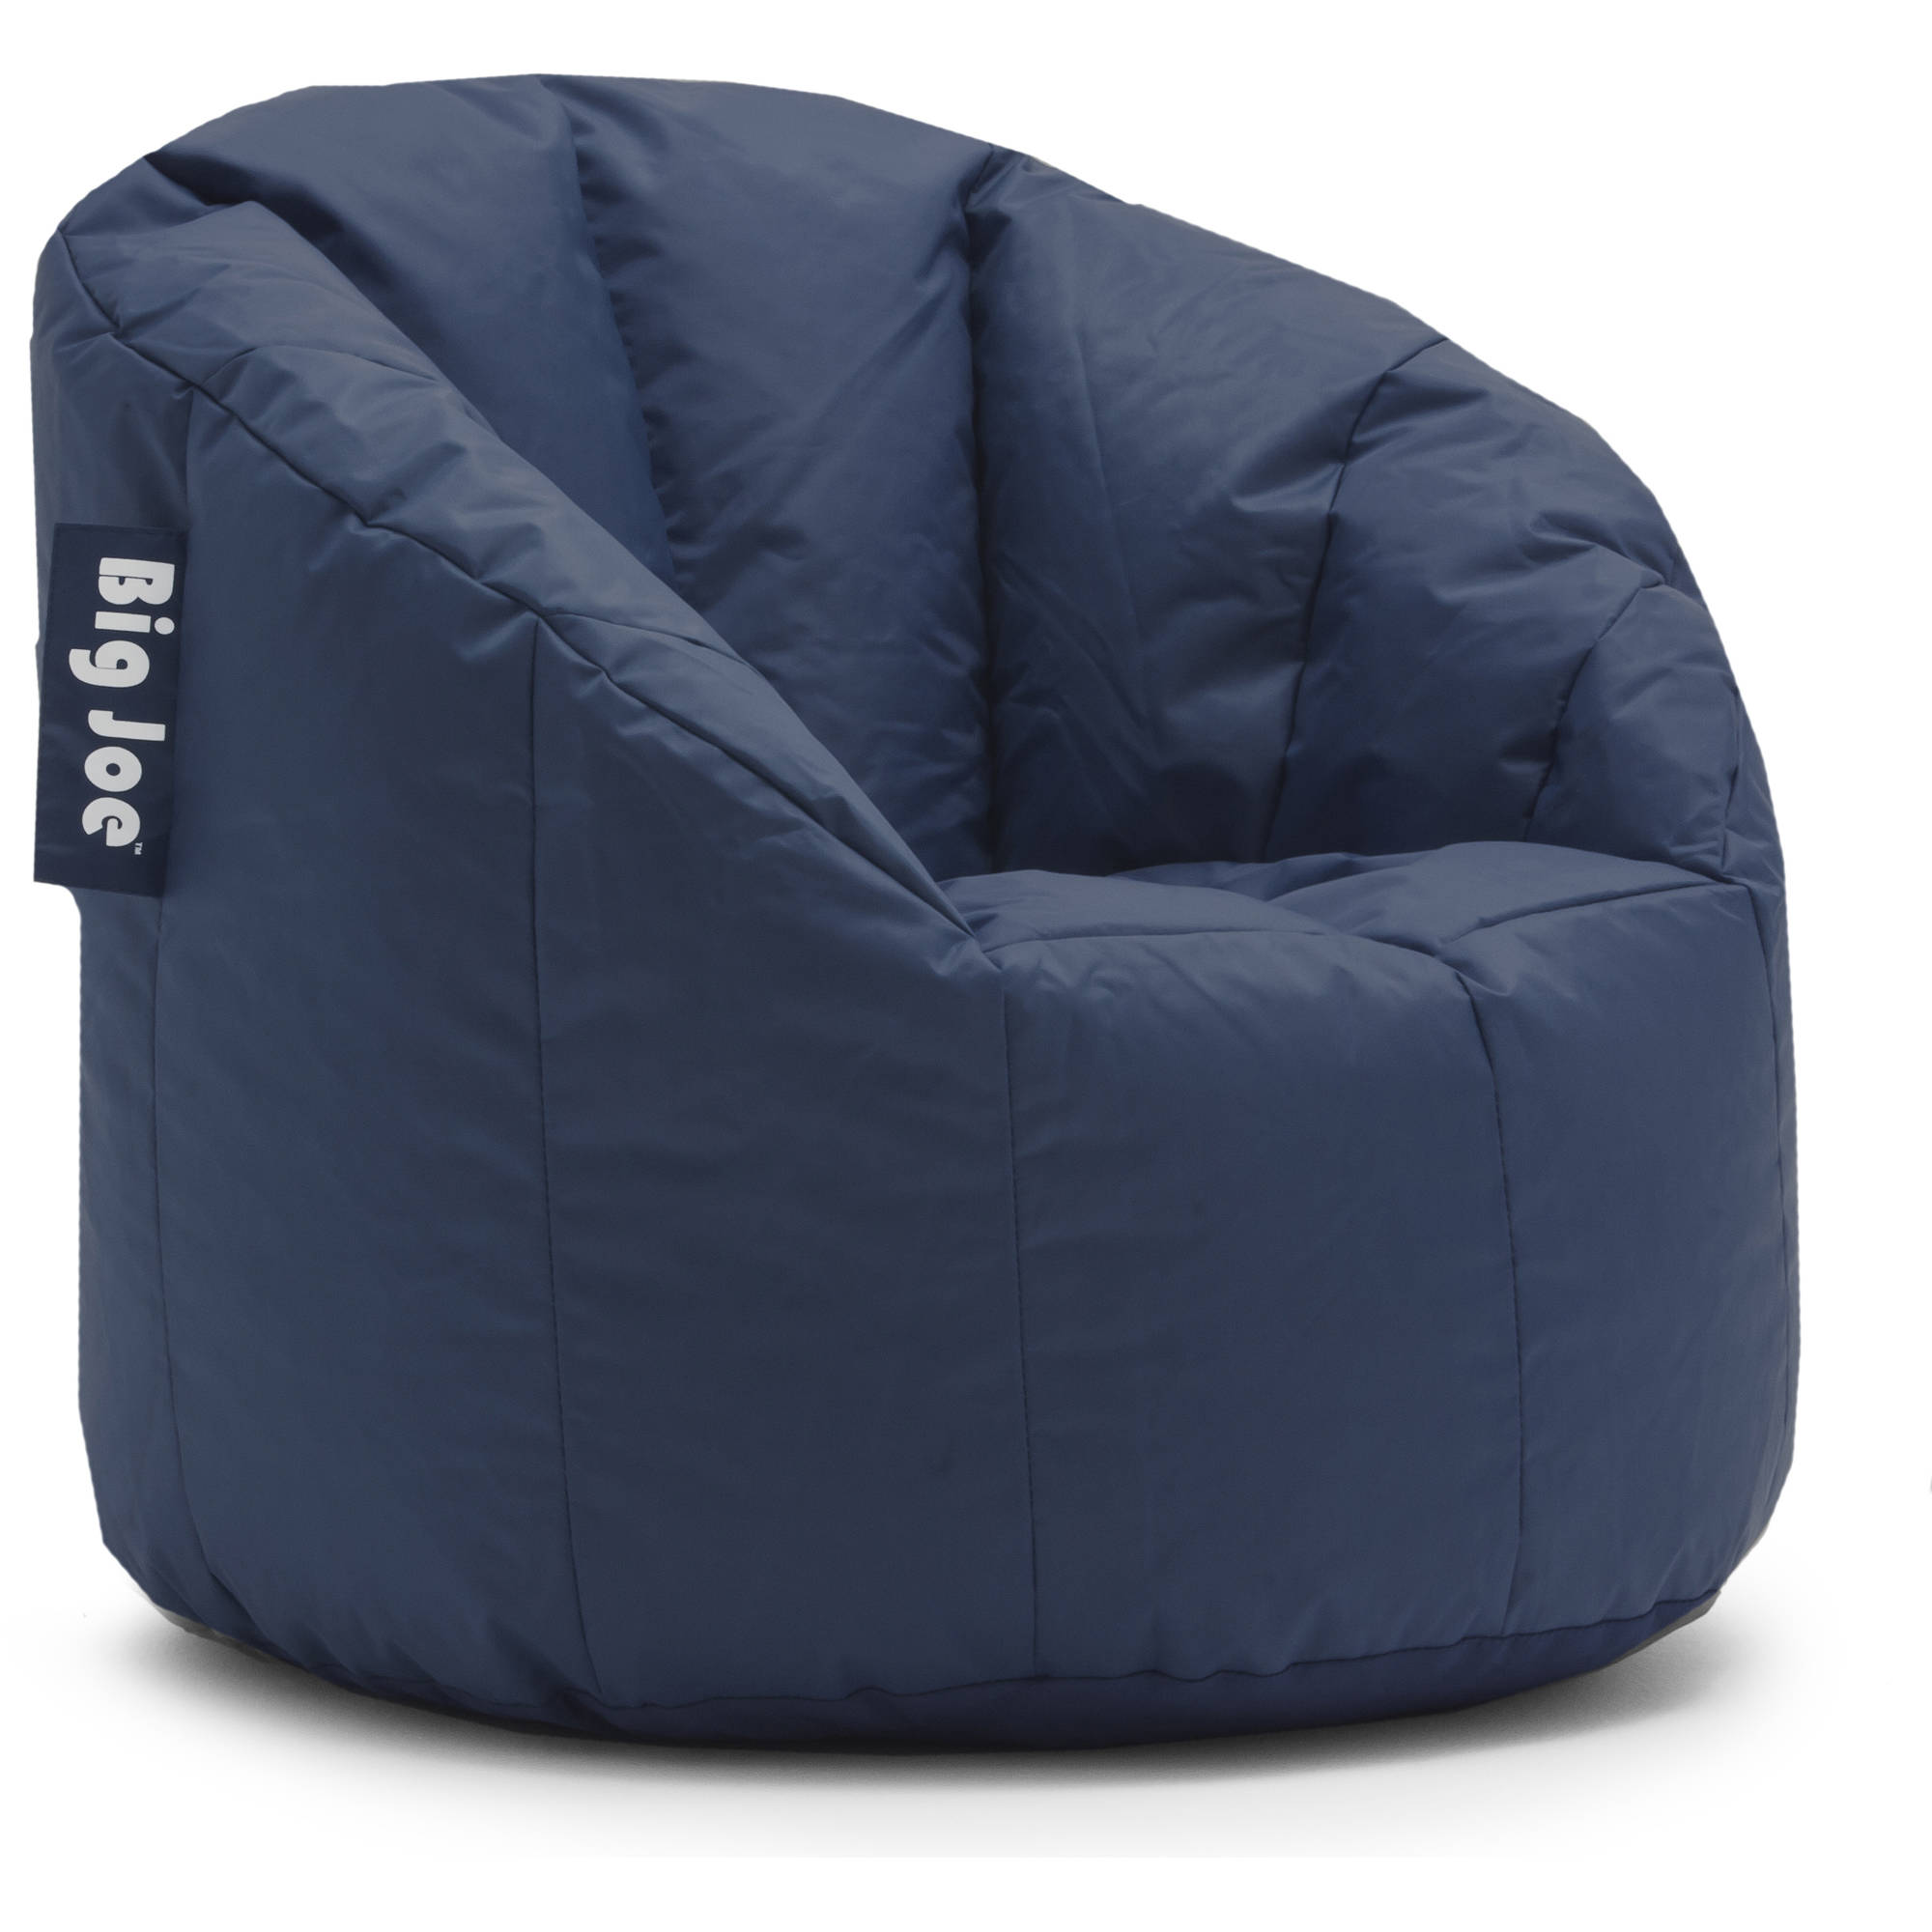 Big Joe Milano Bean Bag Chair Multiple Colors 32 x 28 x 25